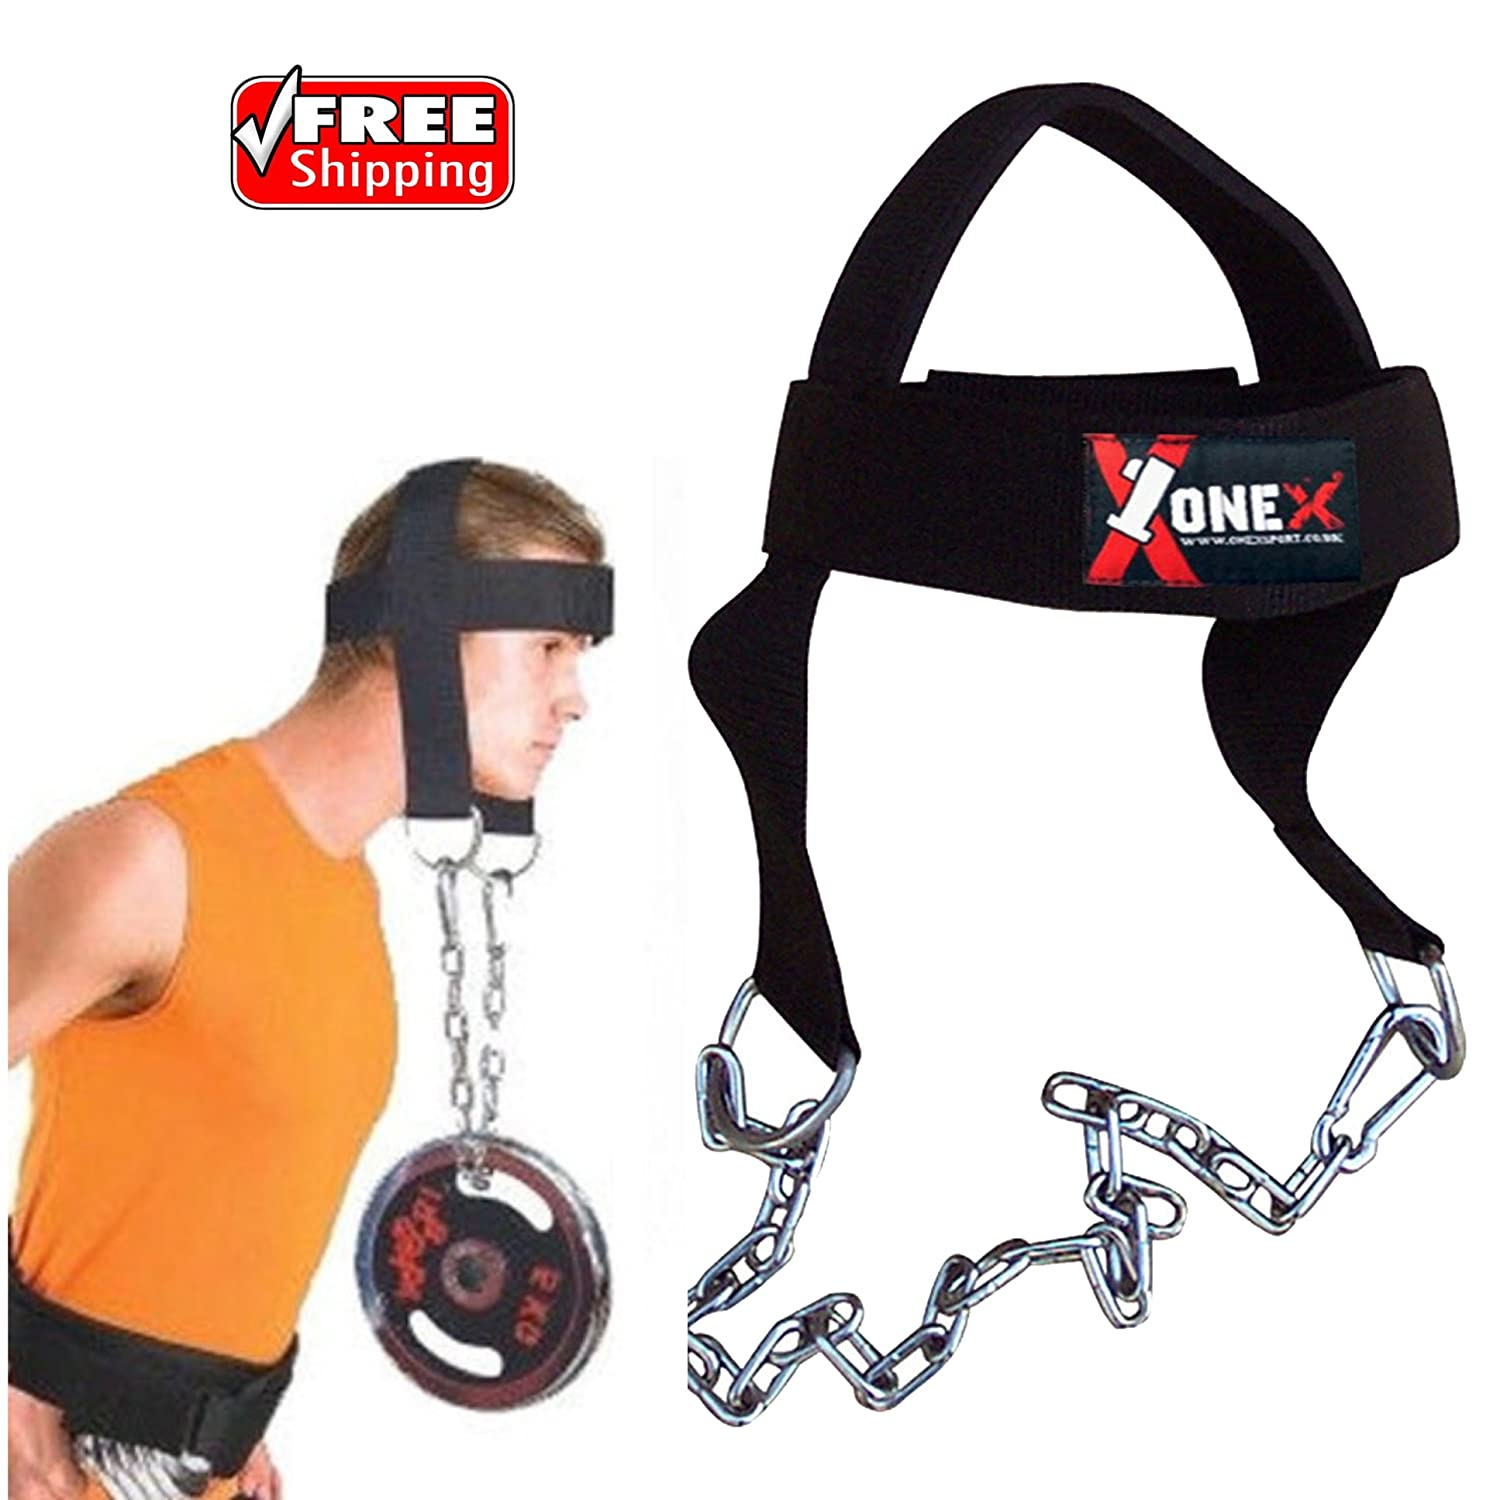 Gym Head Harness Neck Head Harness for Resistance Training by Universal Fitness. Extra-Heavy D-Rings and Steel Chain, Comfort Fit Neoprene, Superior Saddle Stitching. Build A Thicker Neck with Durable Exercise Neck Strap onex